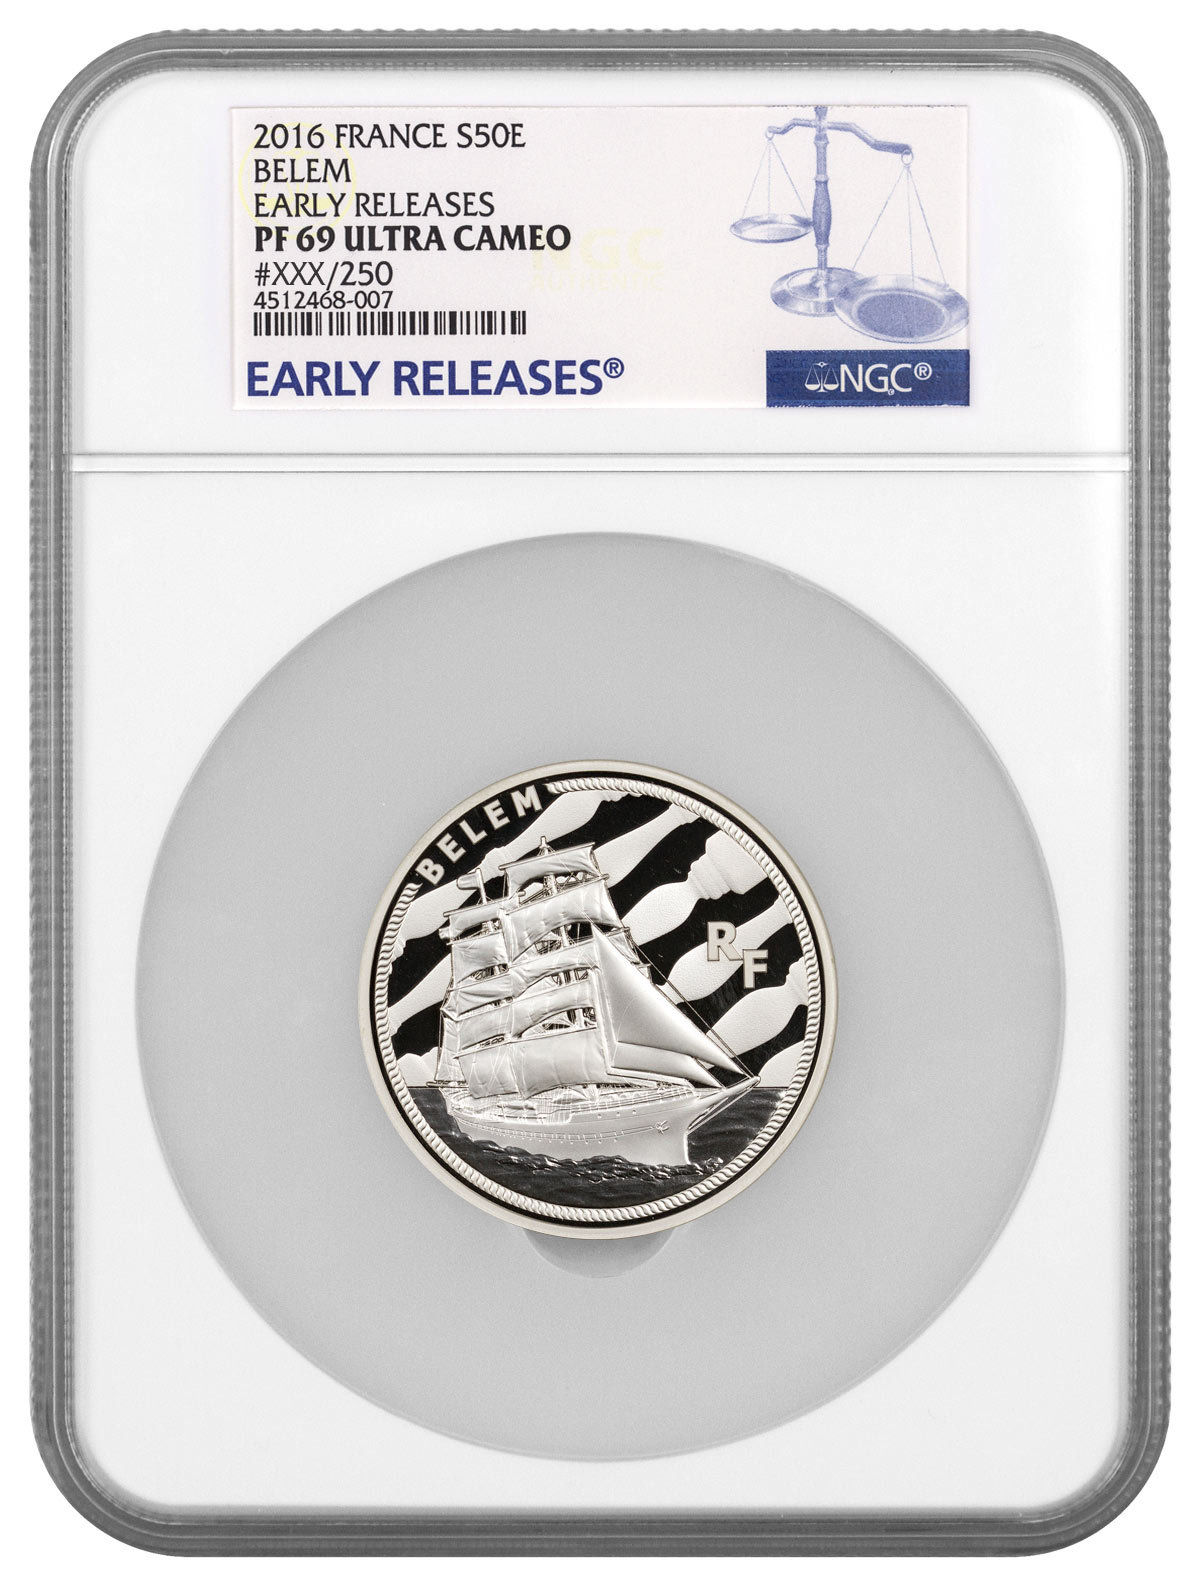 Haining tide France 2016 great ship series BELEM ship 5 Ounce Silver NGC-PF69